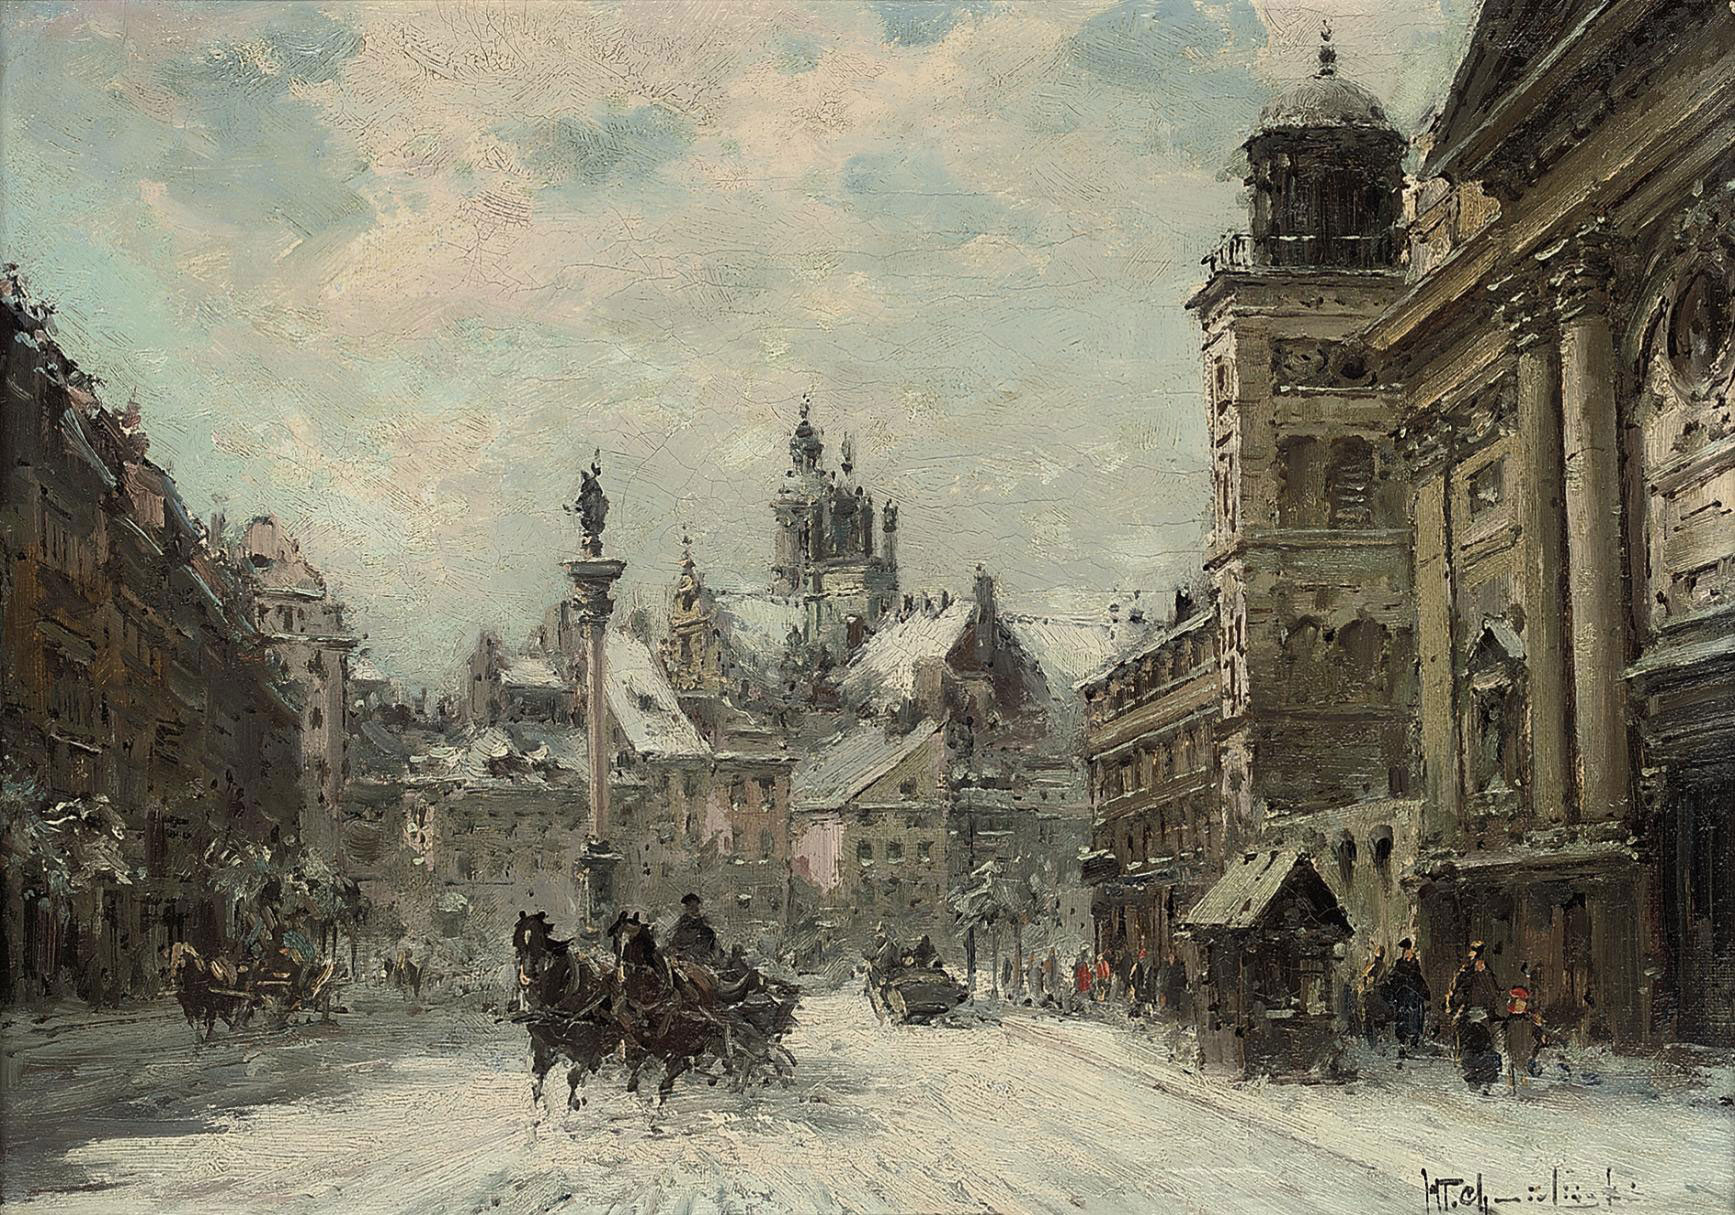 Troikas running through the snow before the statue of King Sigismund, Castle Square, Warsaw